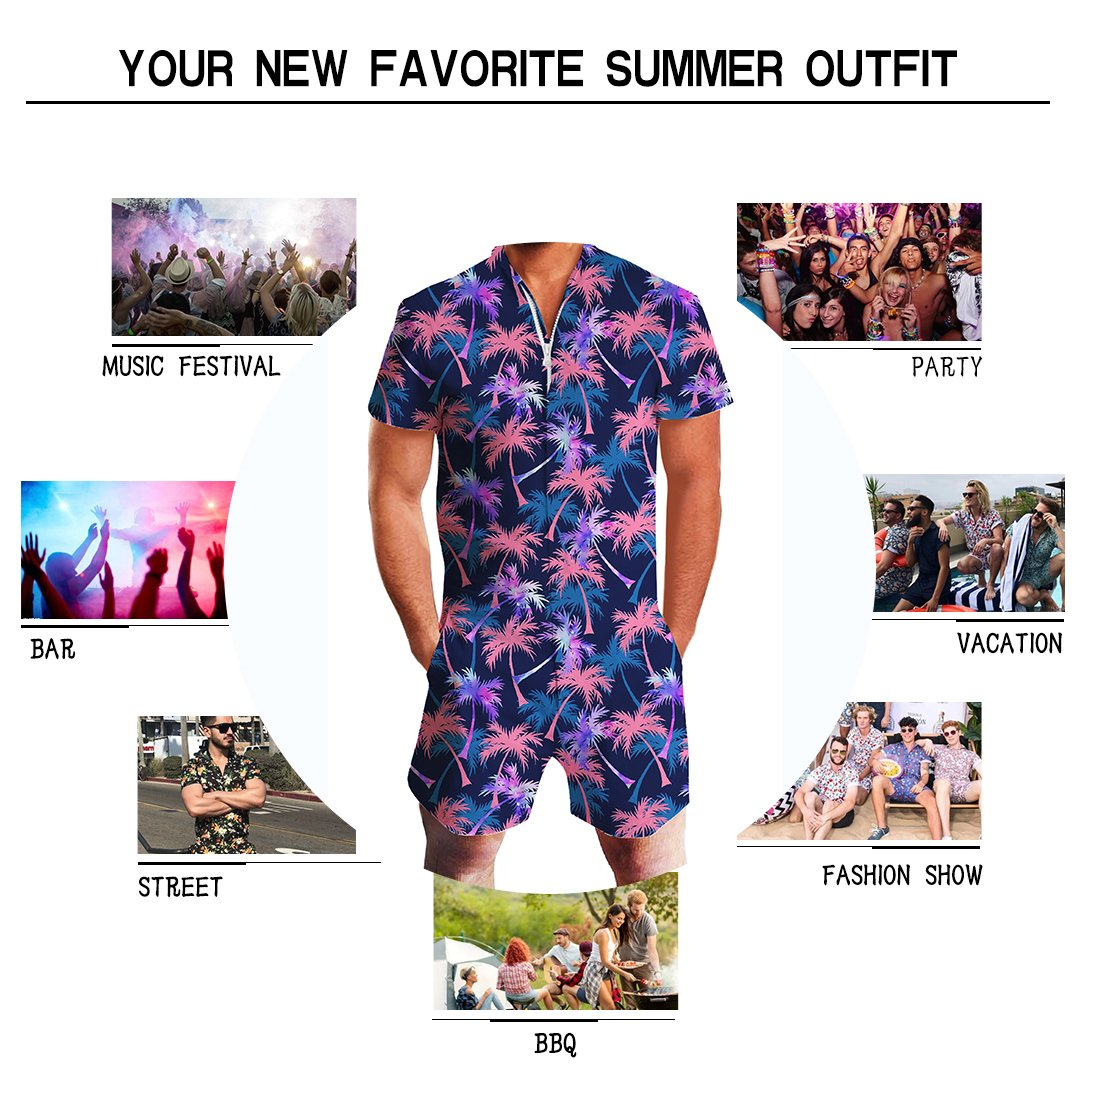 Goodstoworld Mens Jumpsuits 3D Tropical Leaves Print Zip up Romper Casual Grandad Shirt Cargo Shorts Overalls Playsuit for Men XXL by Goodstoworld (Image #2)